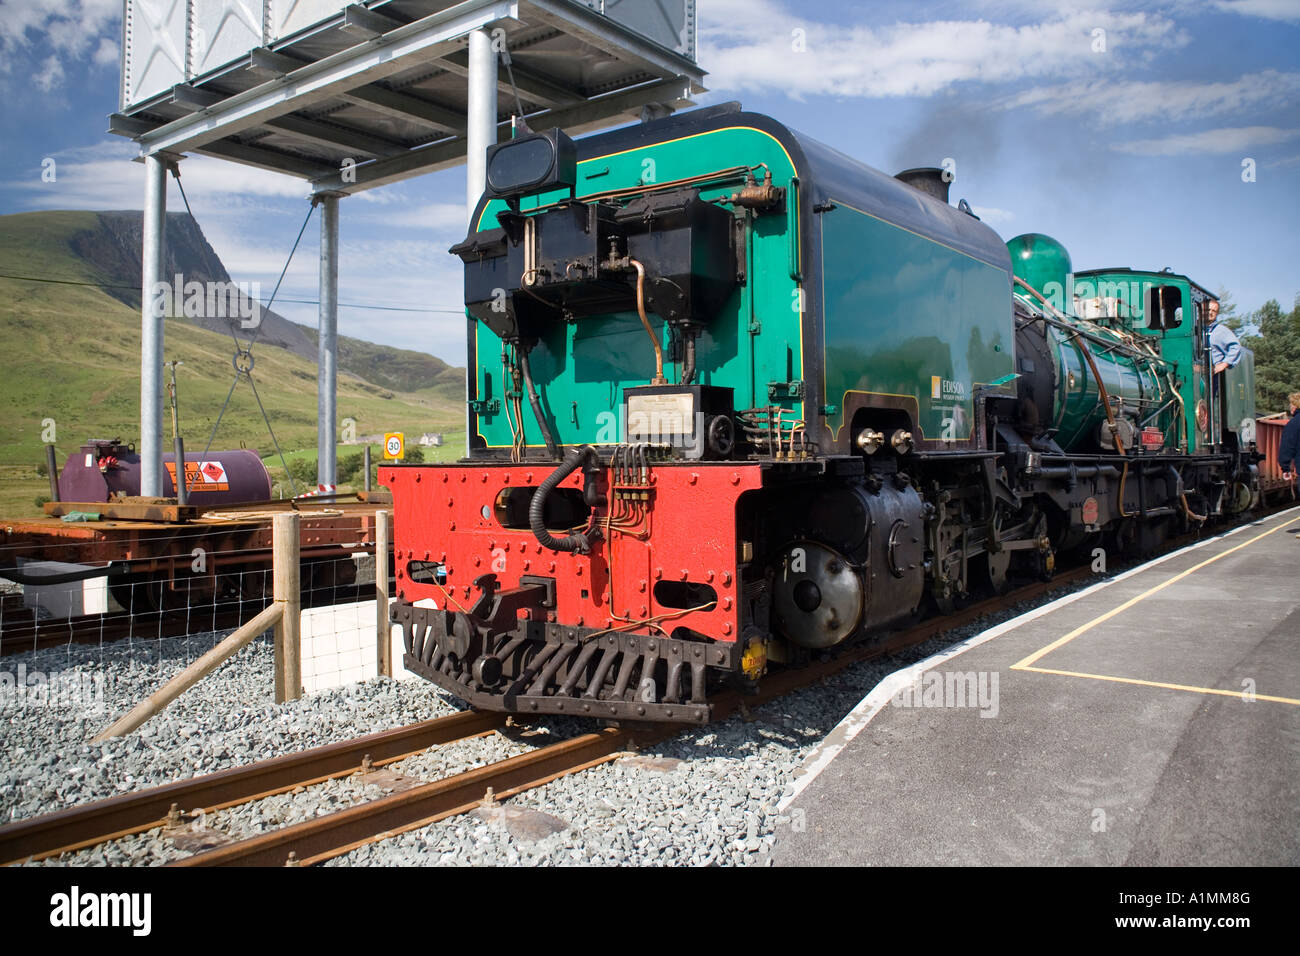 Beyer-Garratt NGG16  locomotive formerly from South Africa at Rhyd Ddu station  on the Welsh Highland Railway,Snowdonia - Stock Image